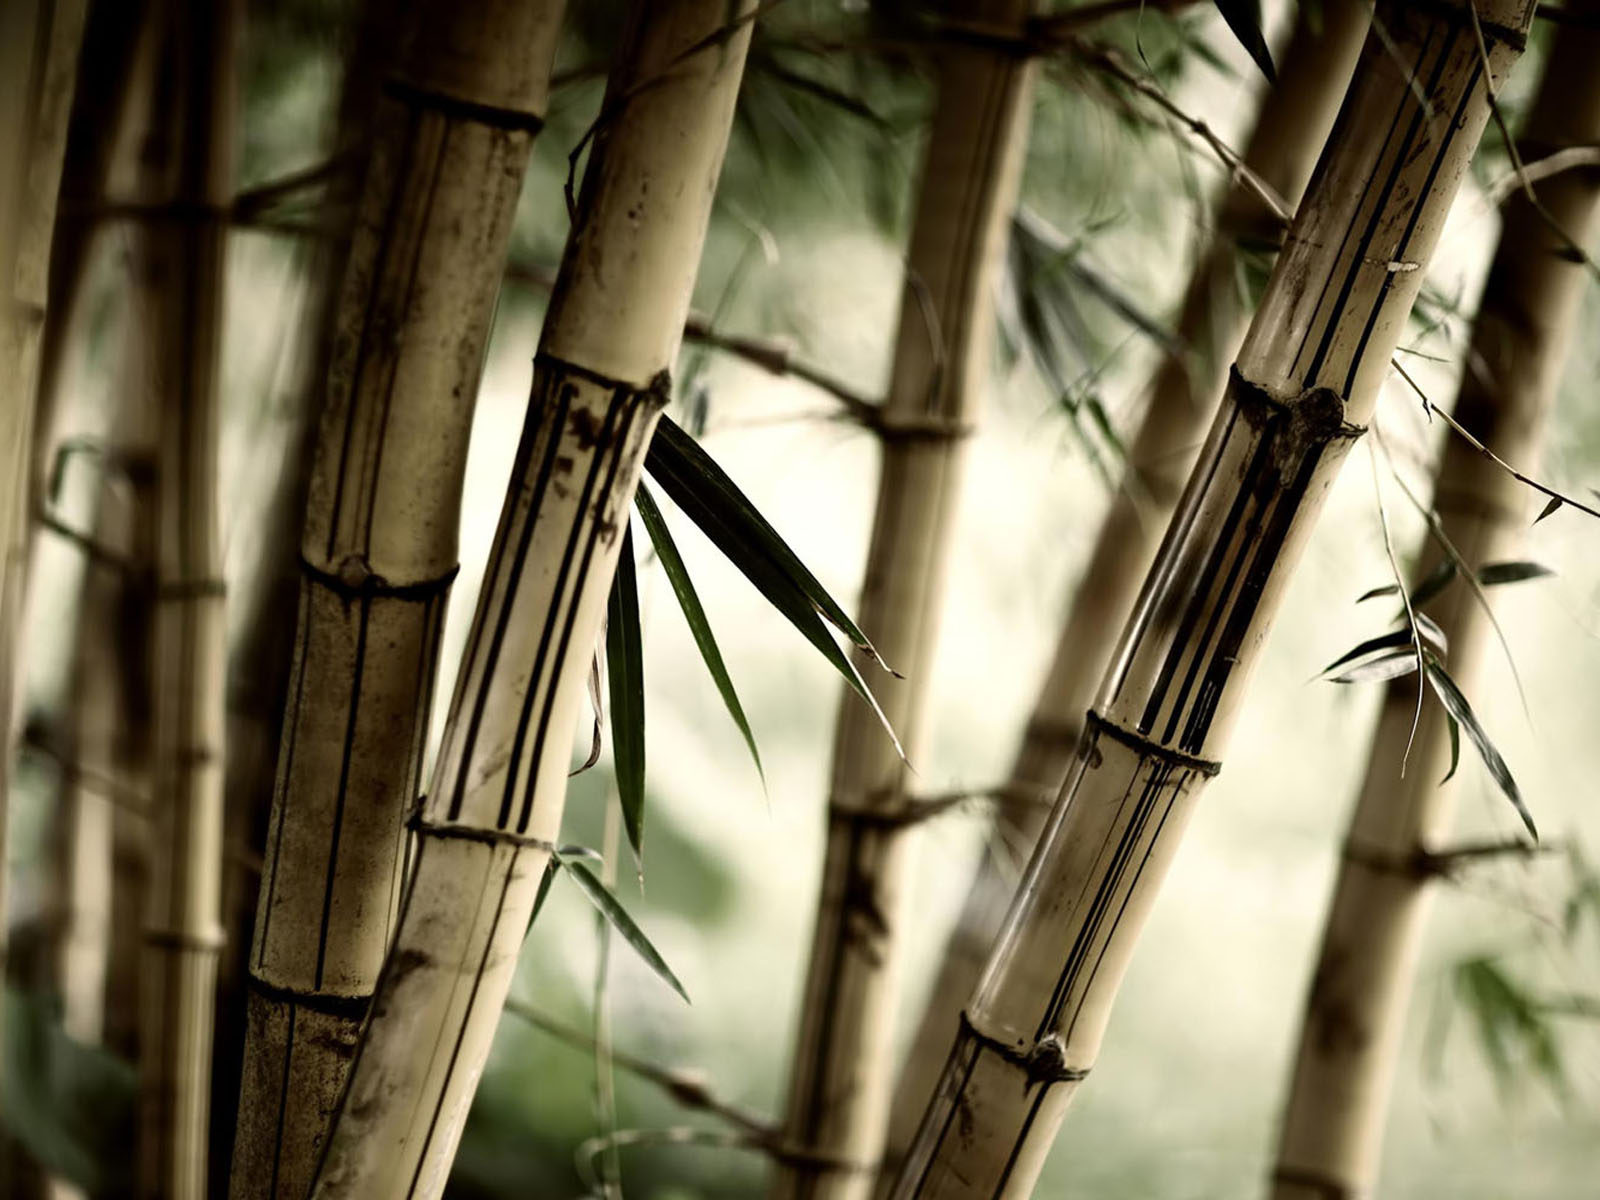 Wallpapers bamboo wallpapers for Bamboo wallpaper for walls